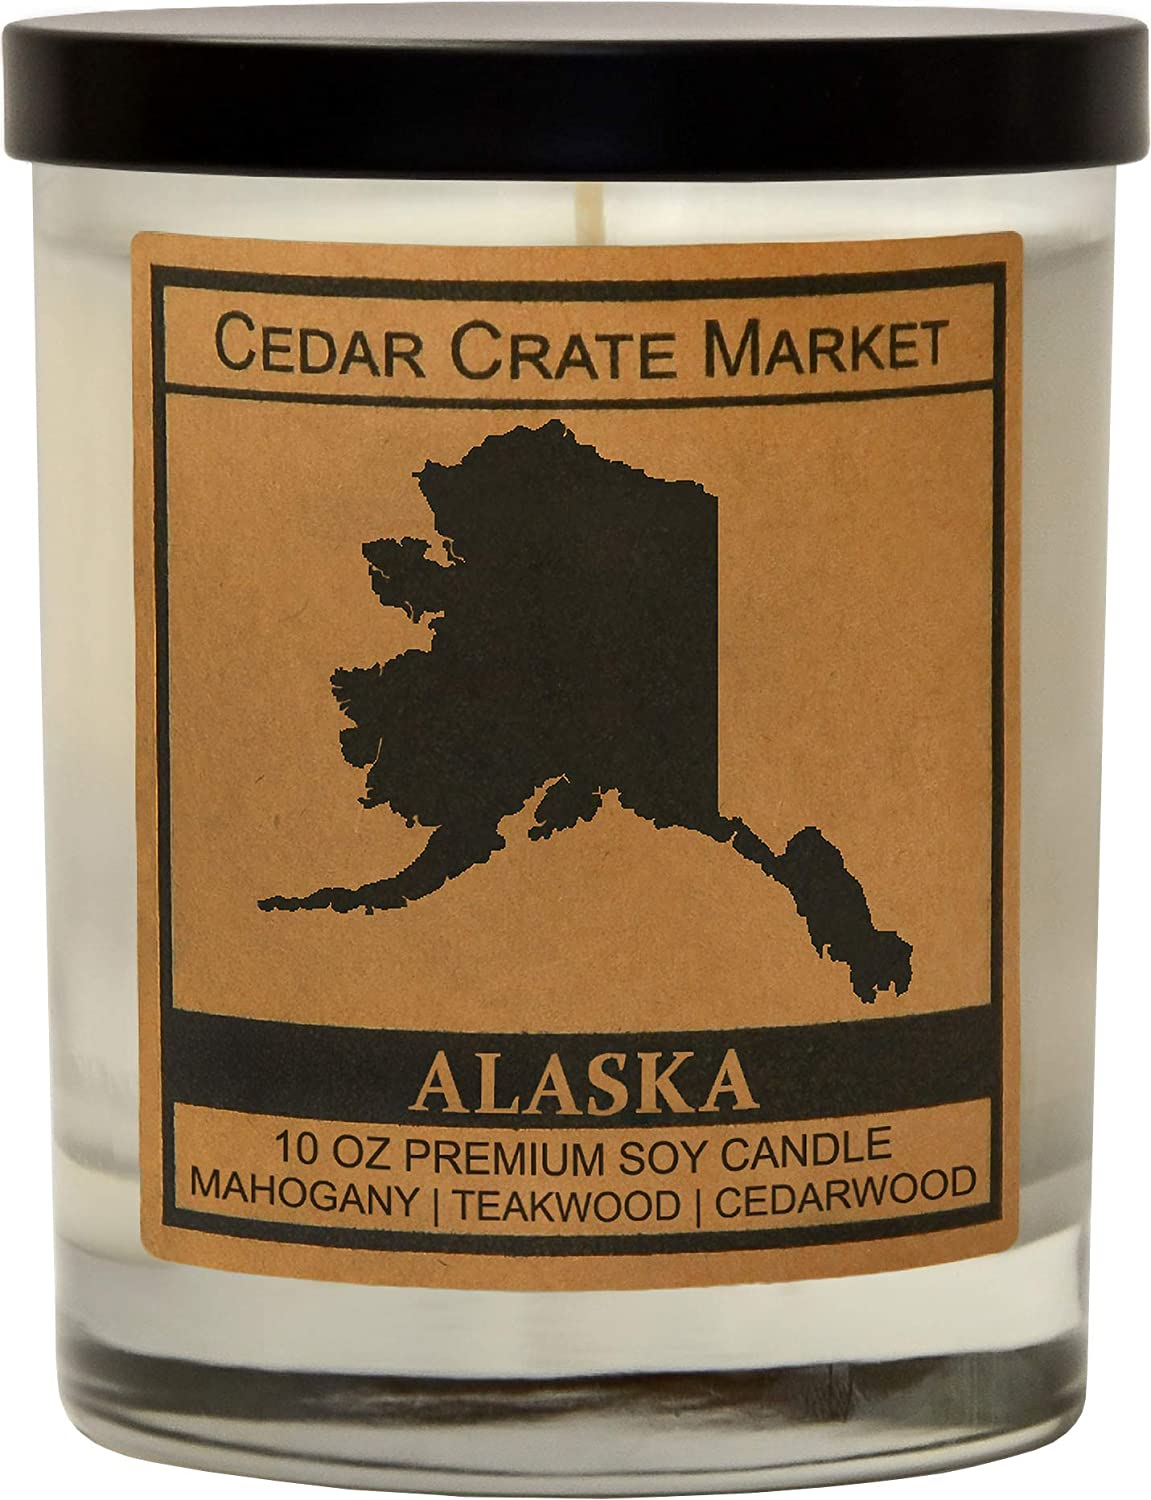 Alaska Kraft Label Scented Soy Candle, Mahogany, Teakwood, Cedarwood, 10 Oz. Glass Jar Candle, Made in The USA, Decorative Candles, Going Away Gifts for Friends, State Candles